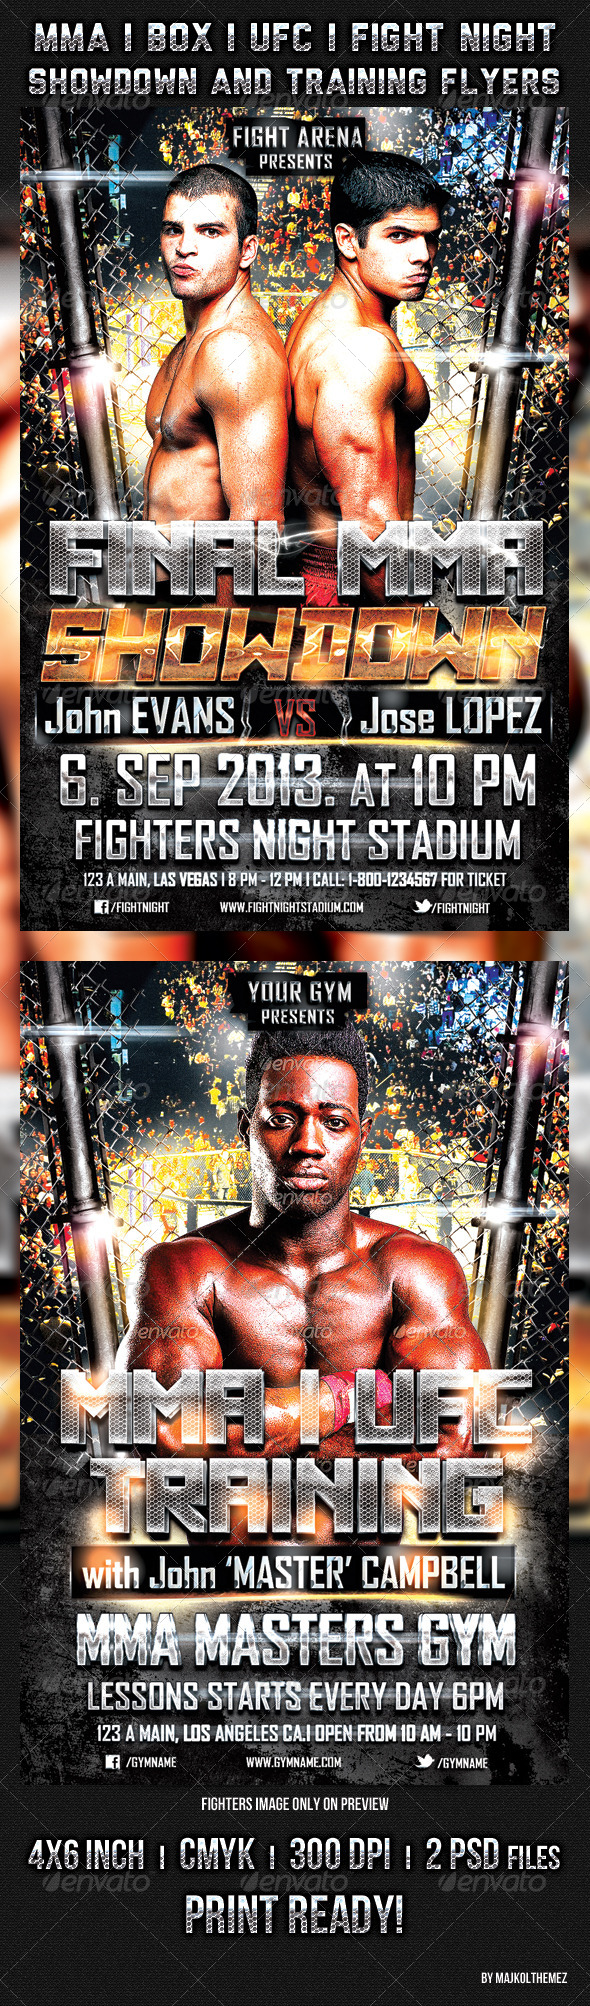 GraphicRiver MMA UFC BOX Showdown and Training Flyers 5545427